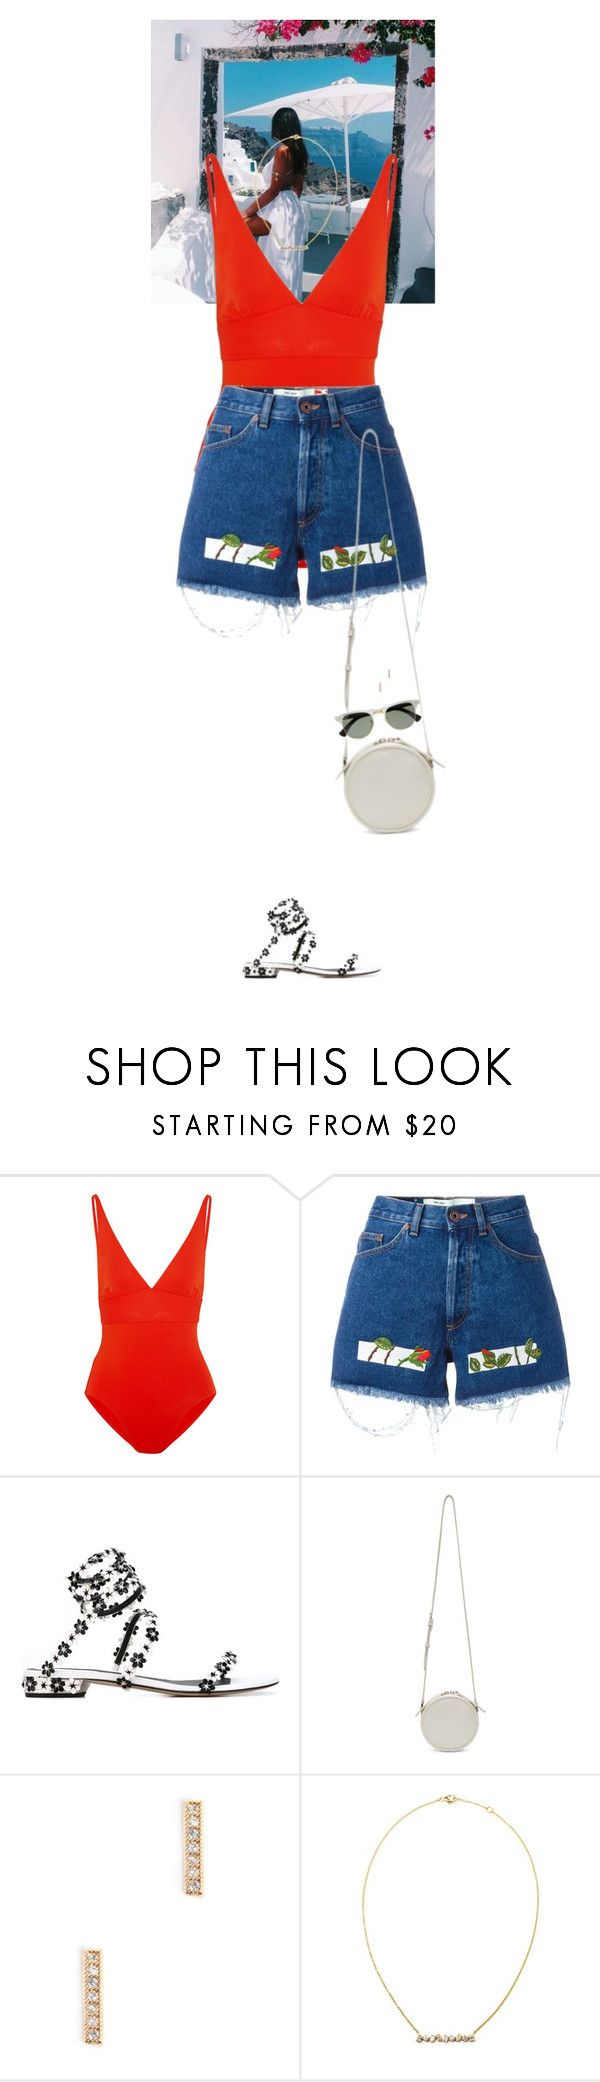 """Outfit of the Day"" by wizmurphy ❤ liked on Polyvore featuring Eres, Off-White, René Caovilla, Kara, Kimberly McDonald, Ray-Ban, ootd and jeanshorts"